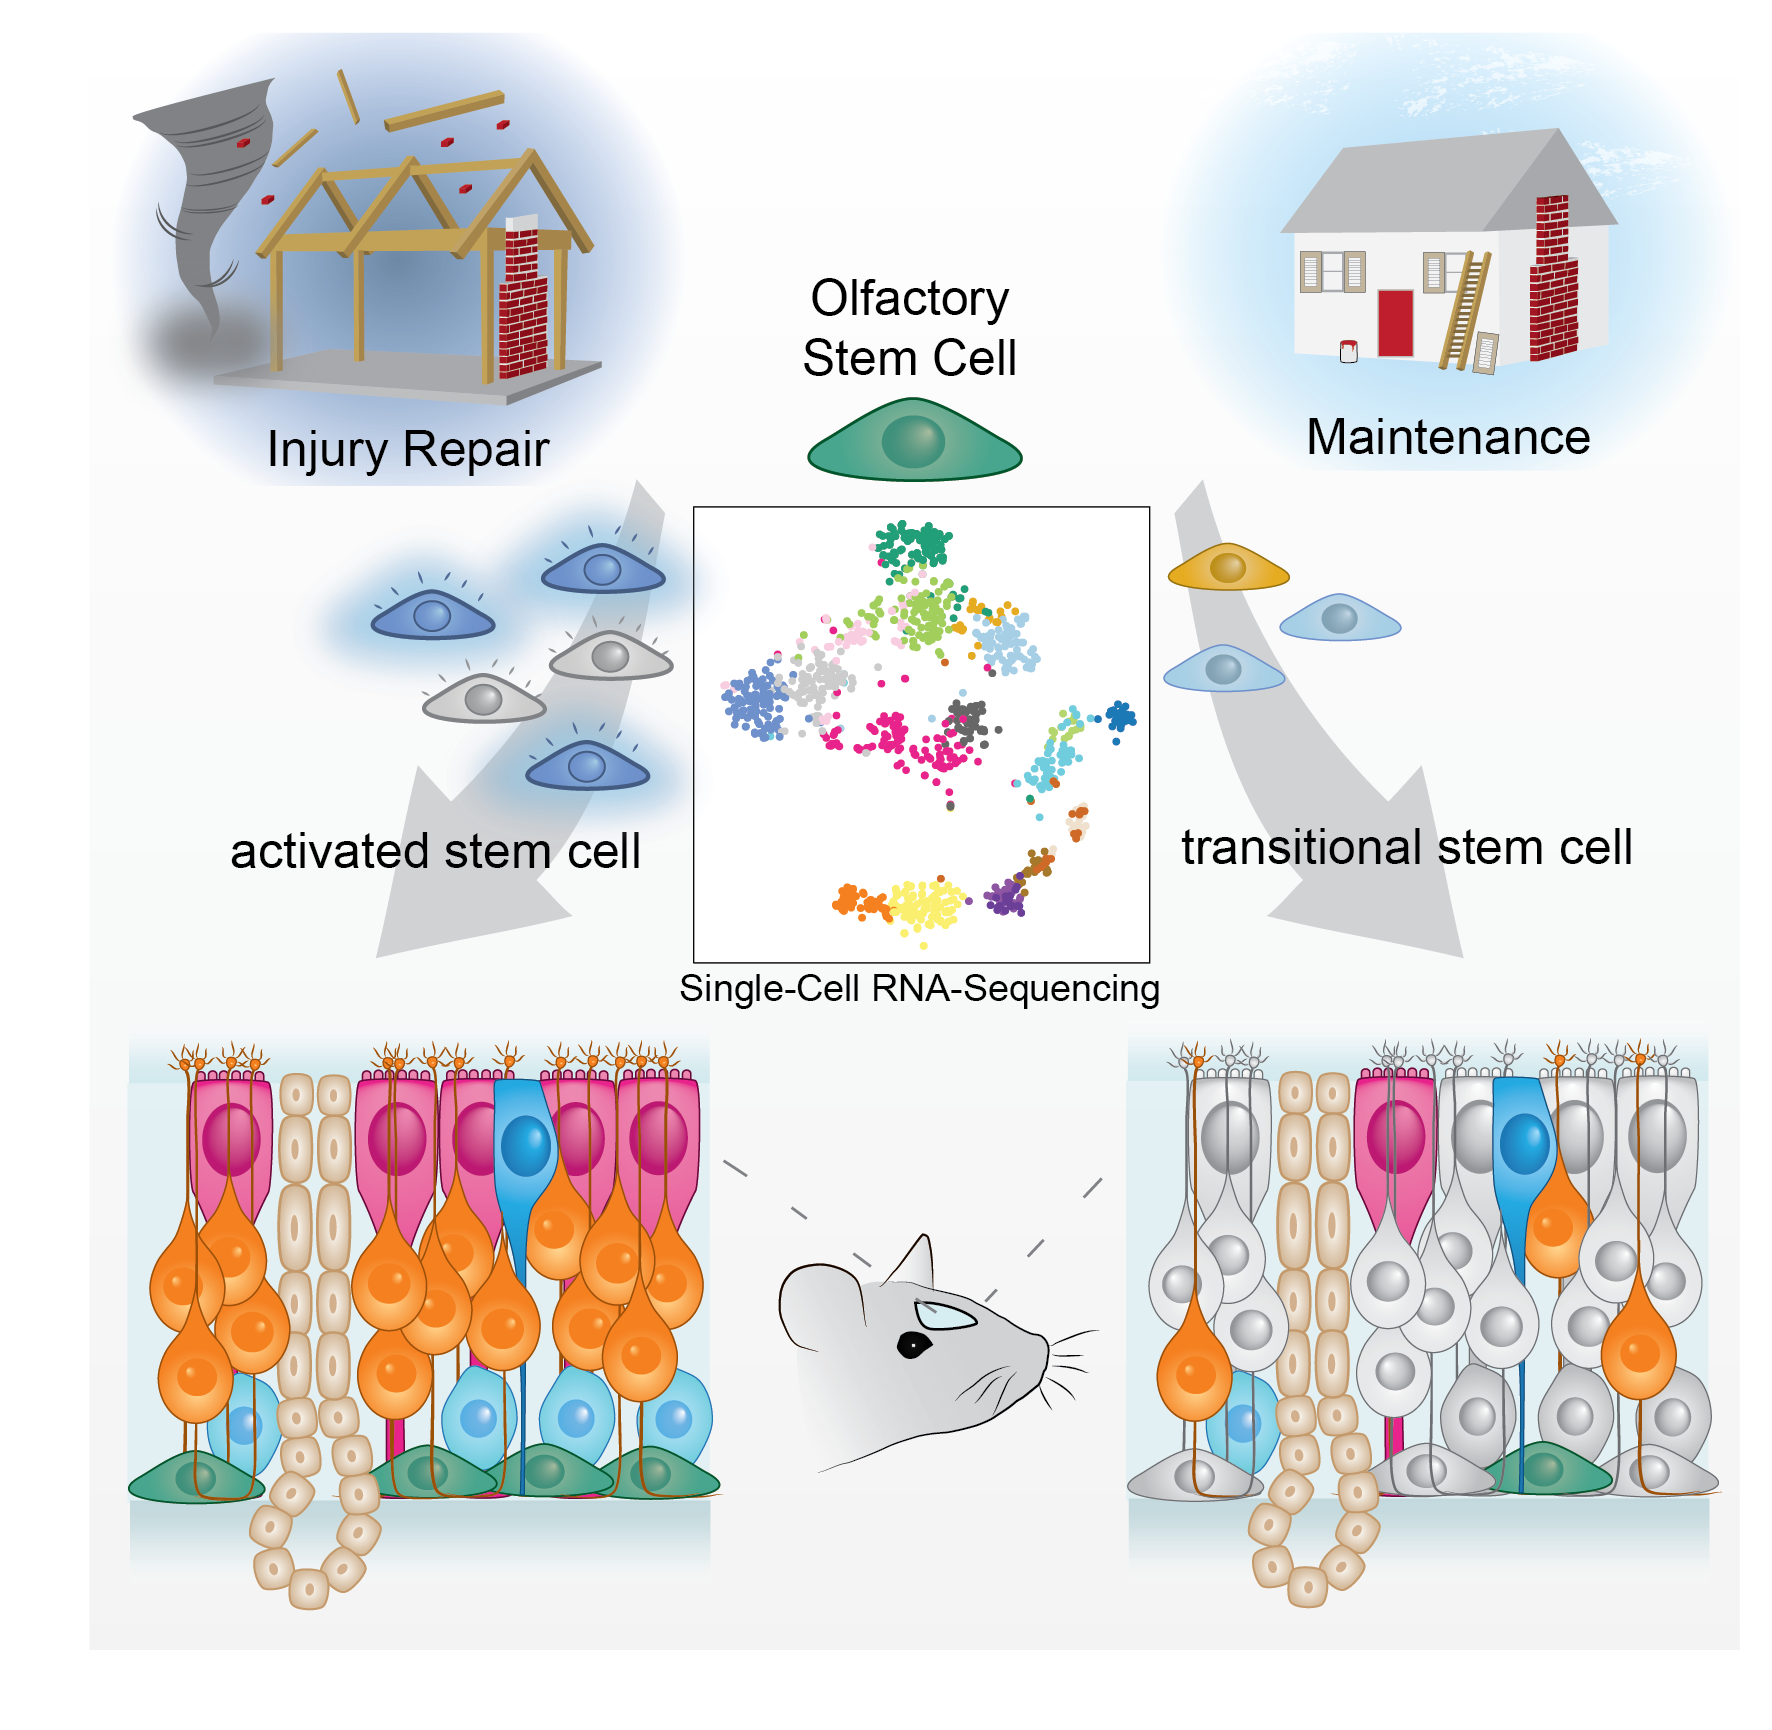 Transient Olfactory Stem Cell States